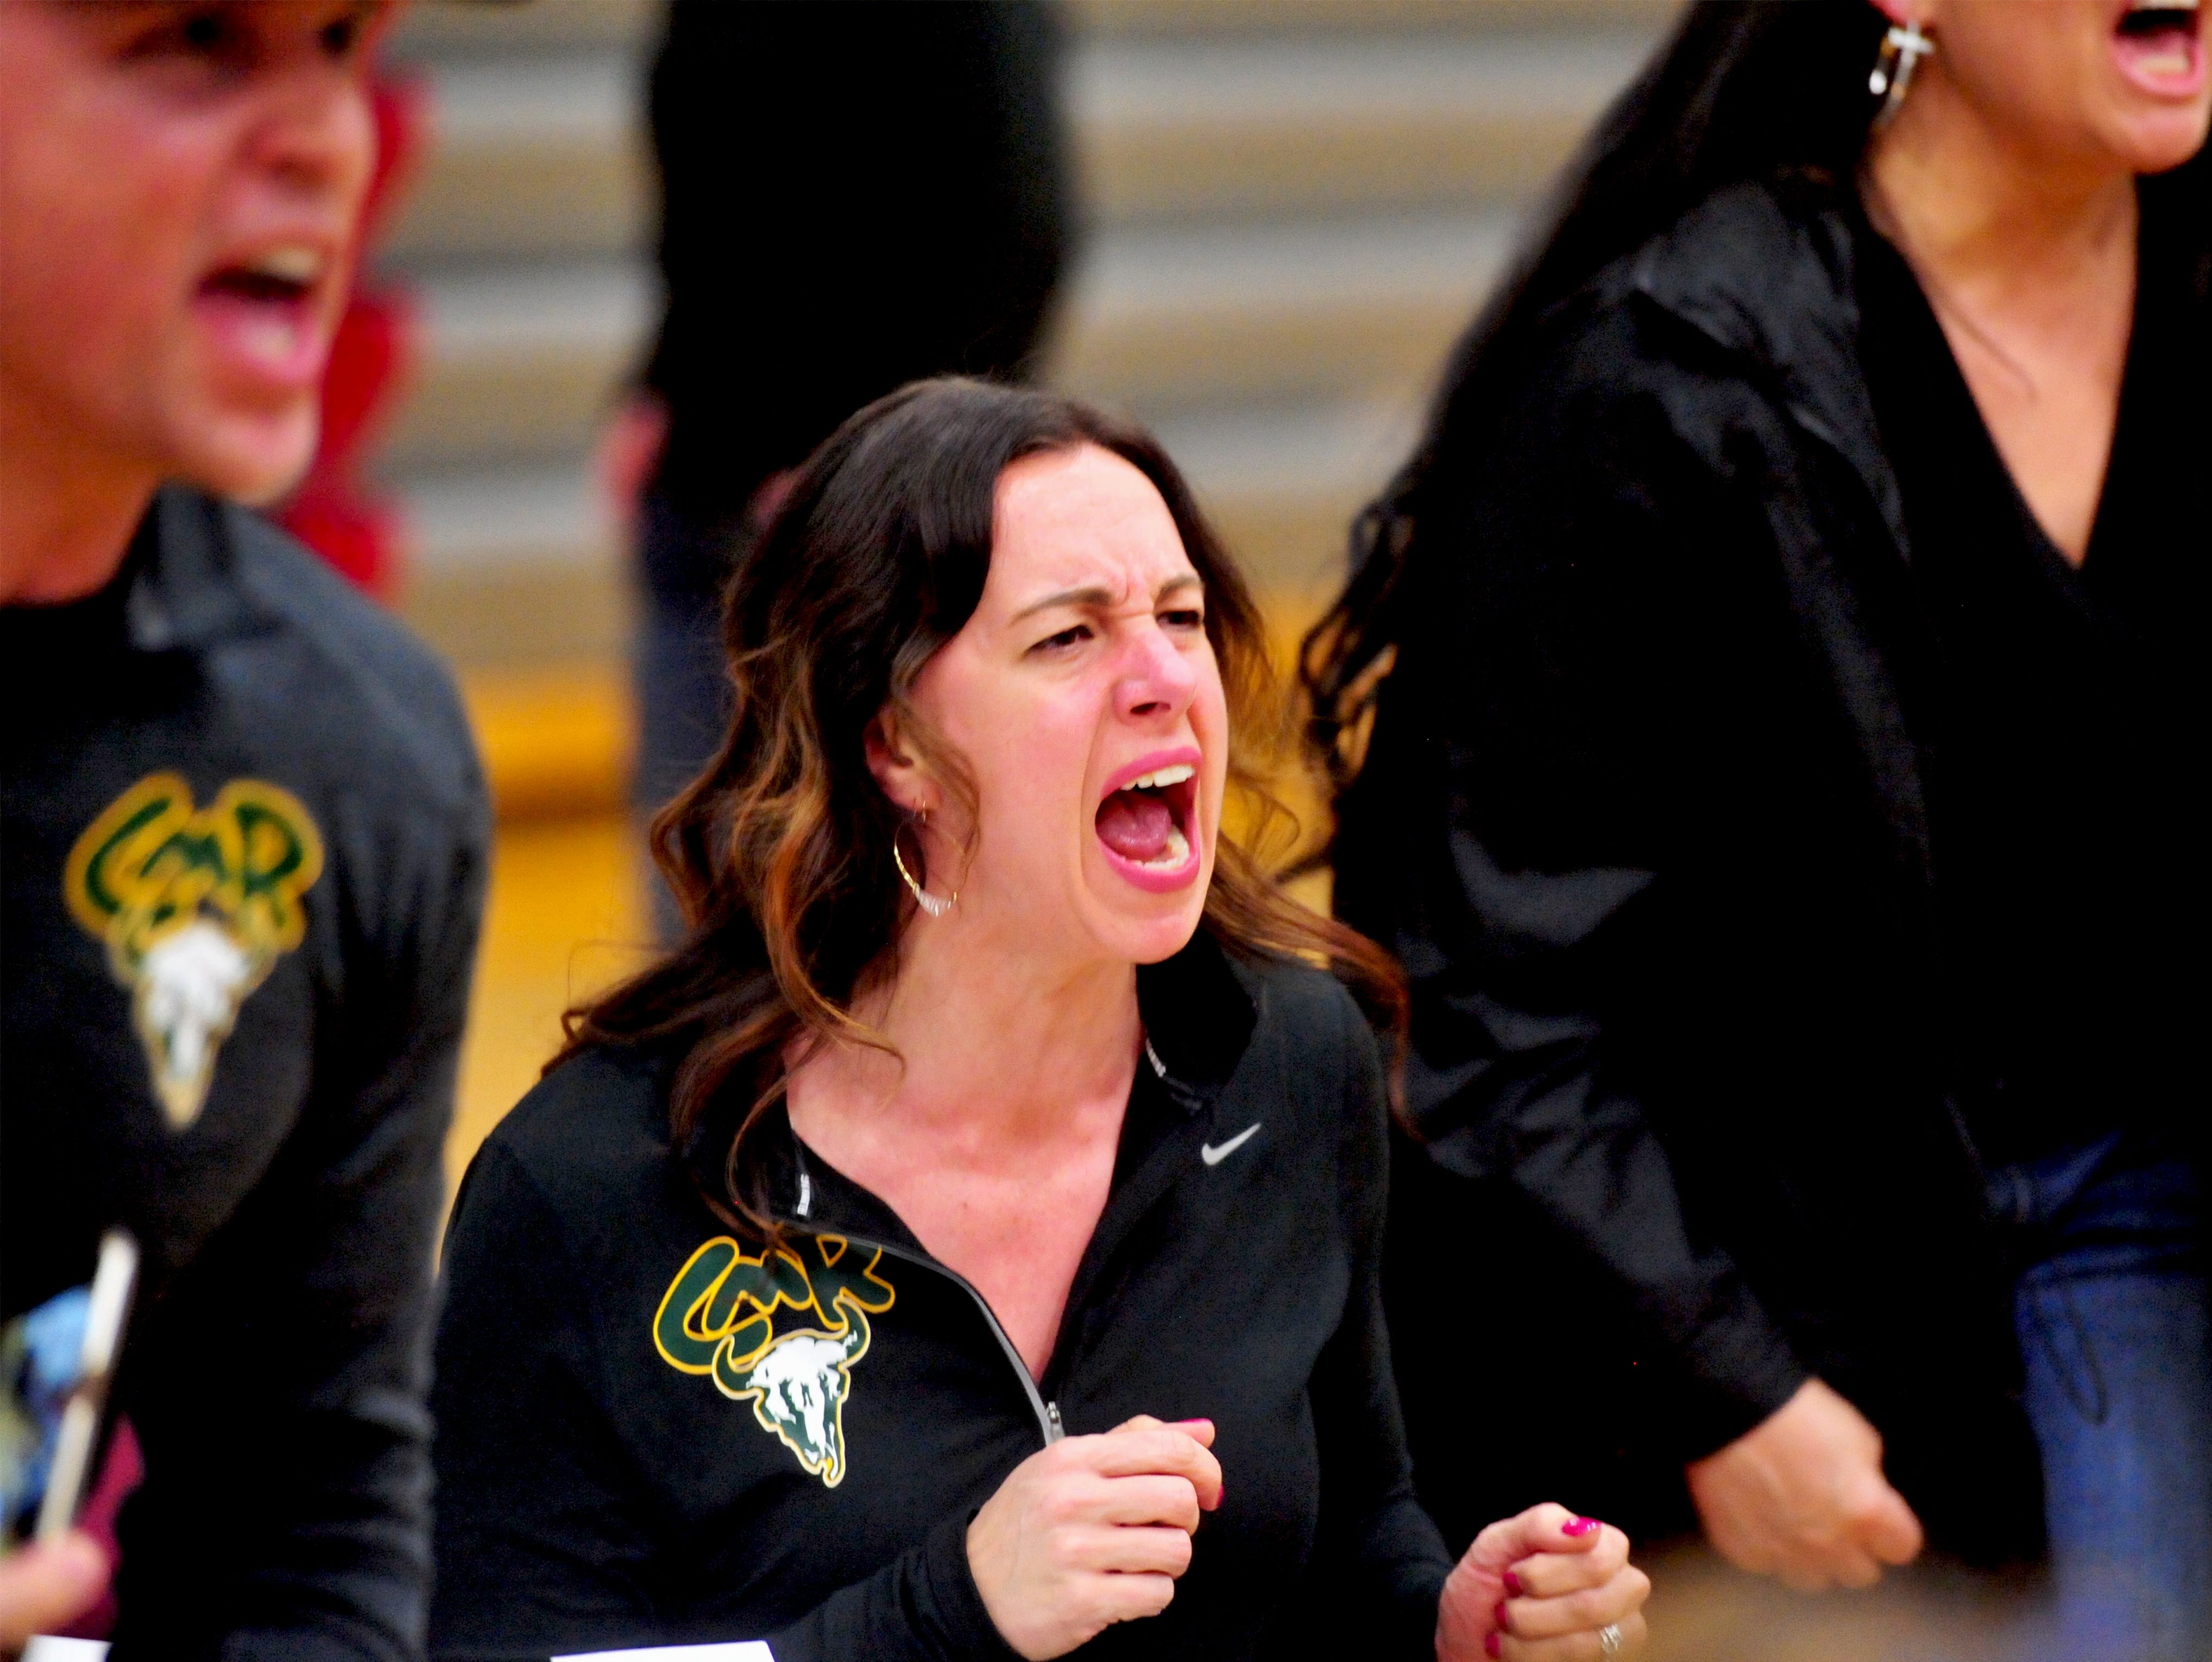 Leslie Simonson cheers on her son Jackson during the 2019 Crosstown Rumble, Friday night at Paris Gibson Education Center.